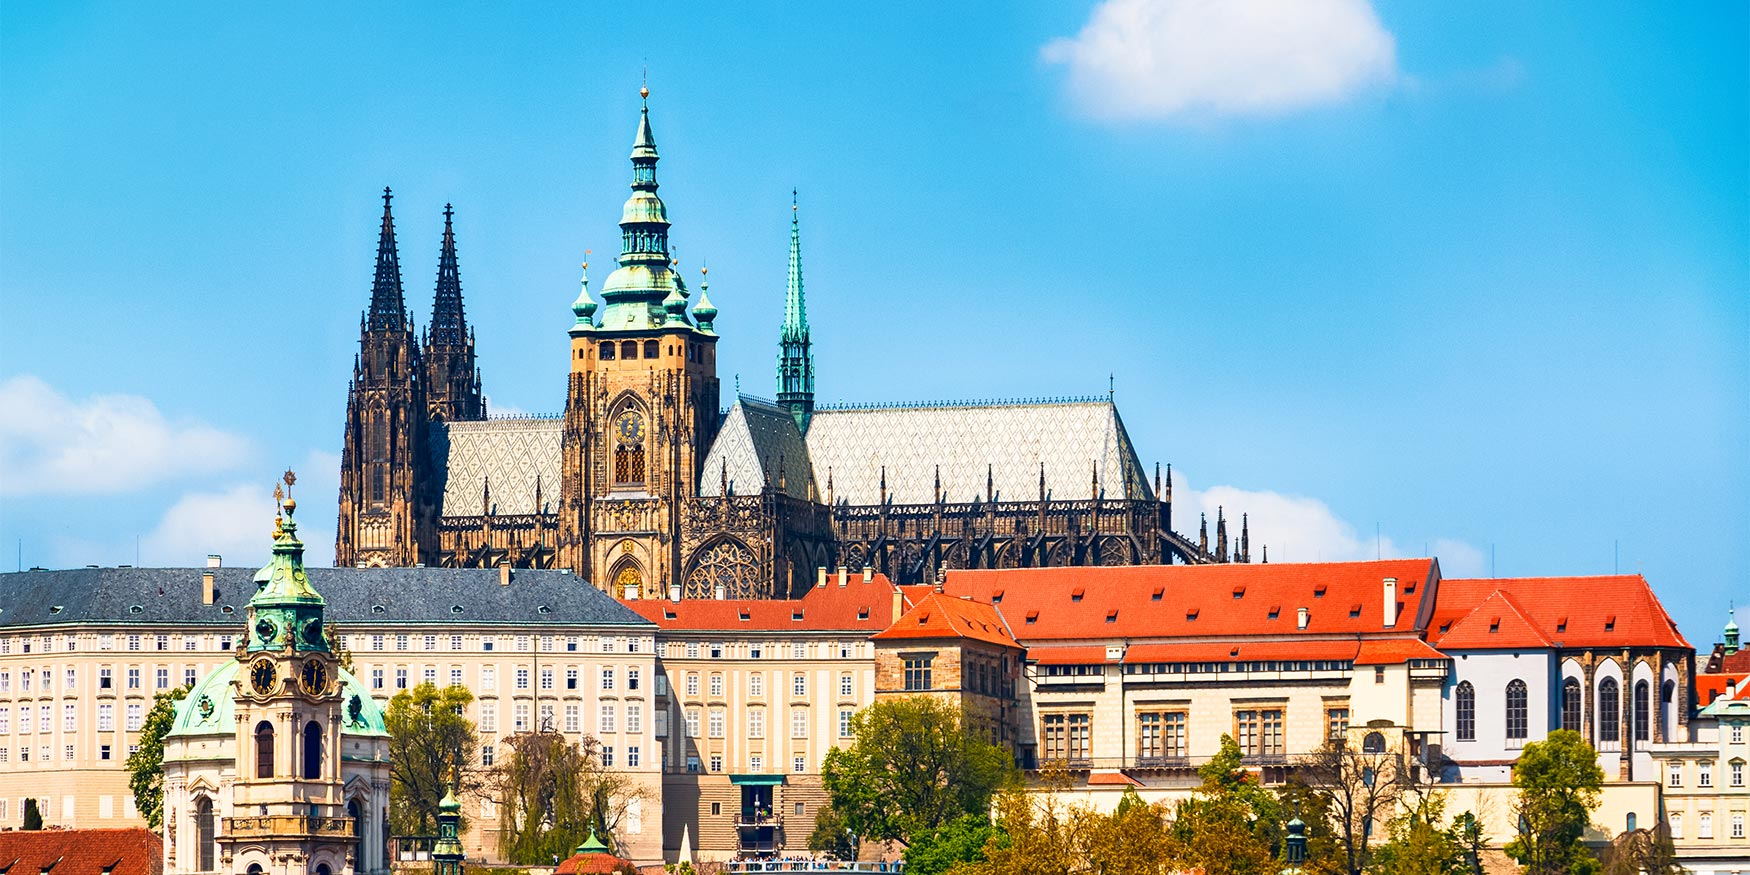 St Vitus Cathedral and Prague Castle, Czechia